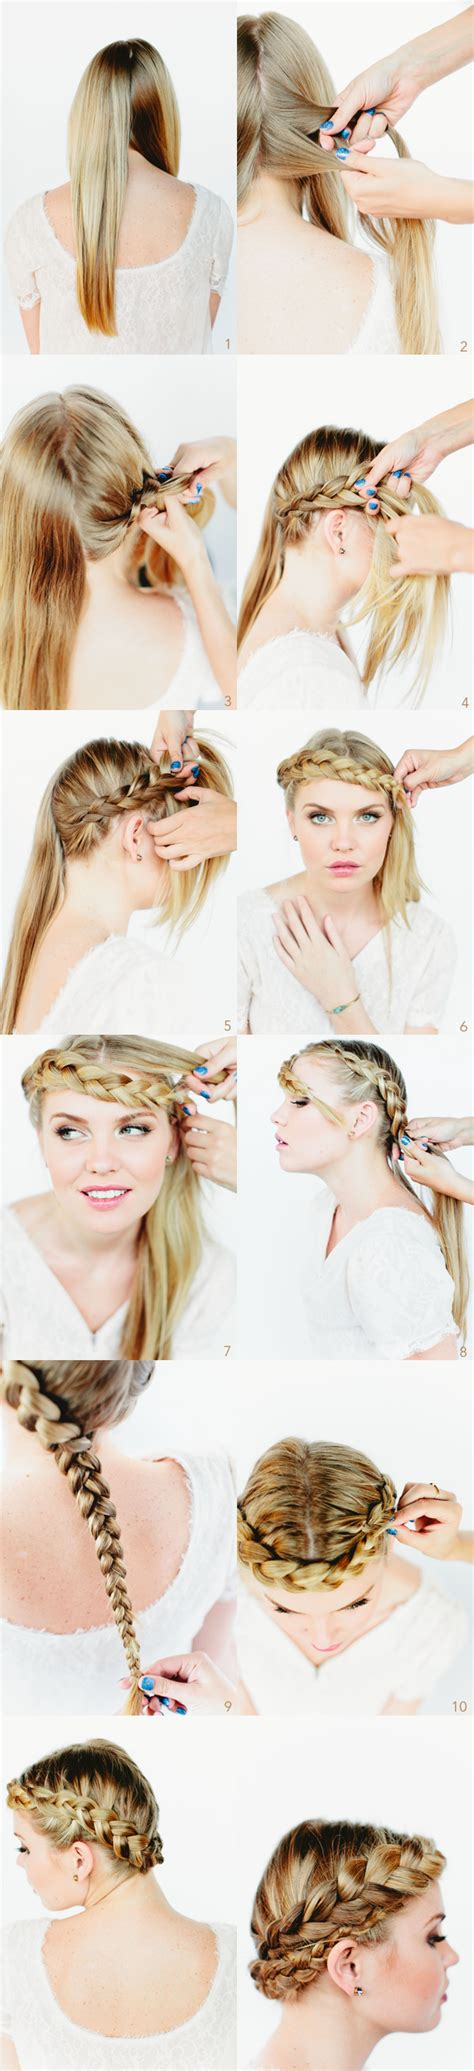 braid lol it s a simple way to do 2 french braids on thick medium crown braid tutorial once wed